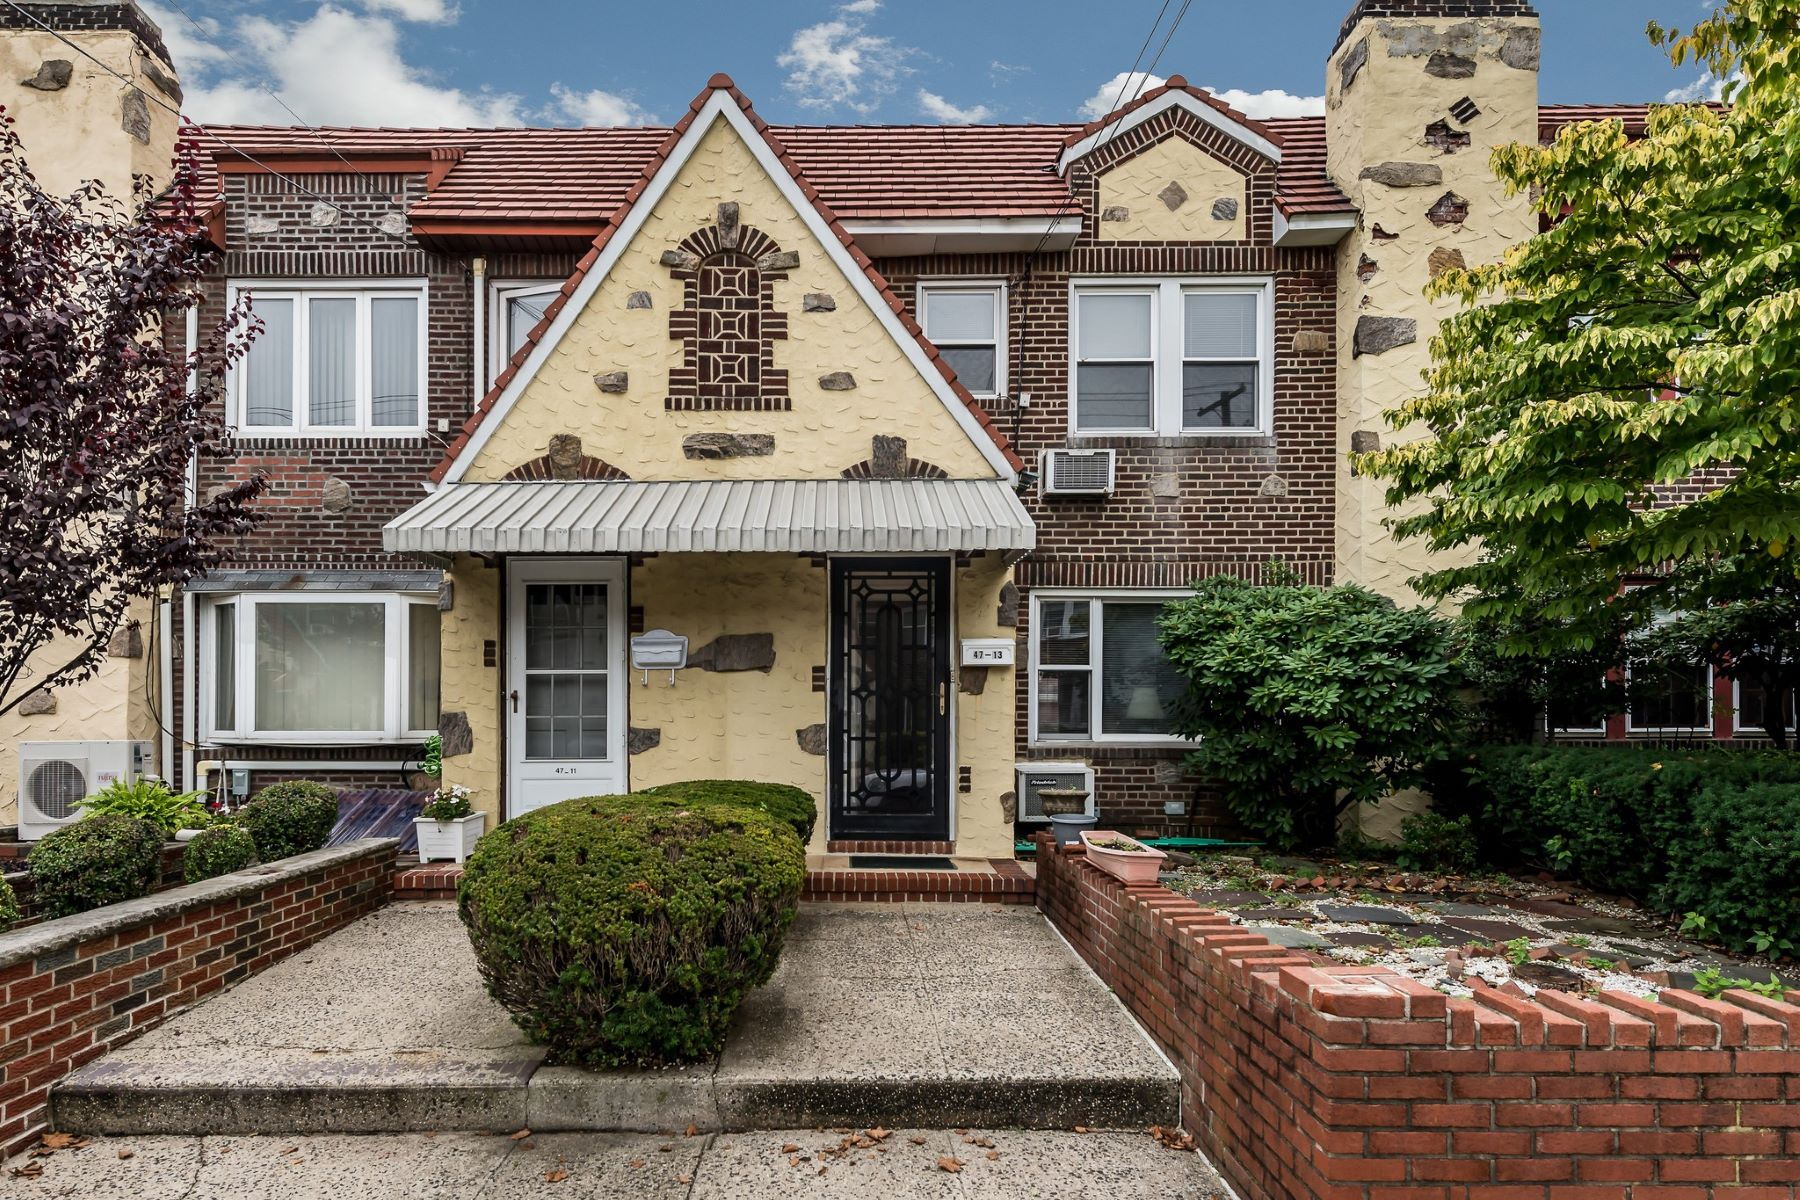 Single Family Home for Sale at 47-13 189th St , Flushing, NY 11358 47-13 189th St Flushing, New York 11358 United States